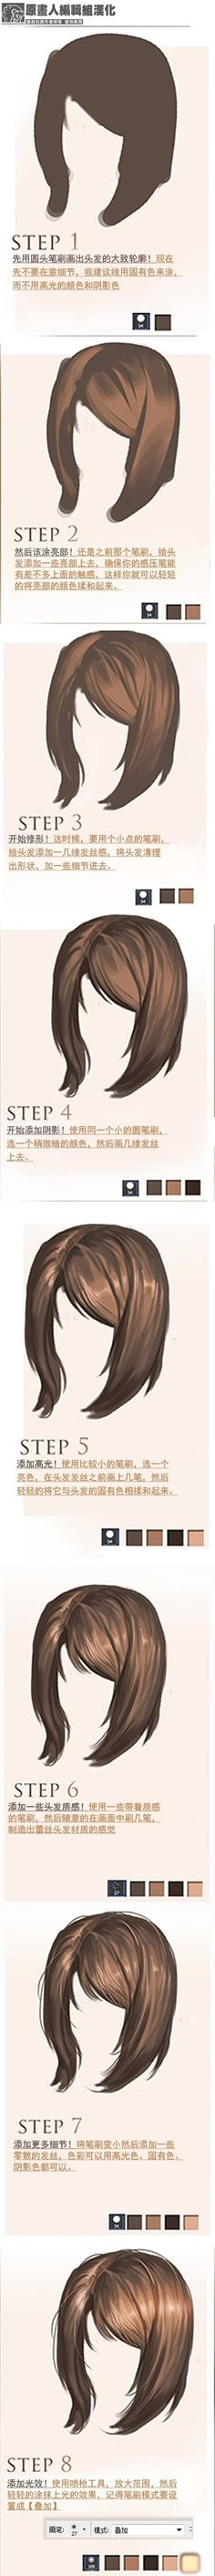 Thinking of painting good hairs? This may help. Digital Painting Tutorials, Digital Art Tutorial, Art Tutorials, Drawing Tutorials, Painting Process, Process Art, Painting & Drawing, Drawing Skills, Drawing Techniques